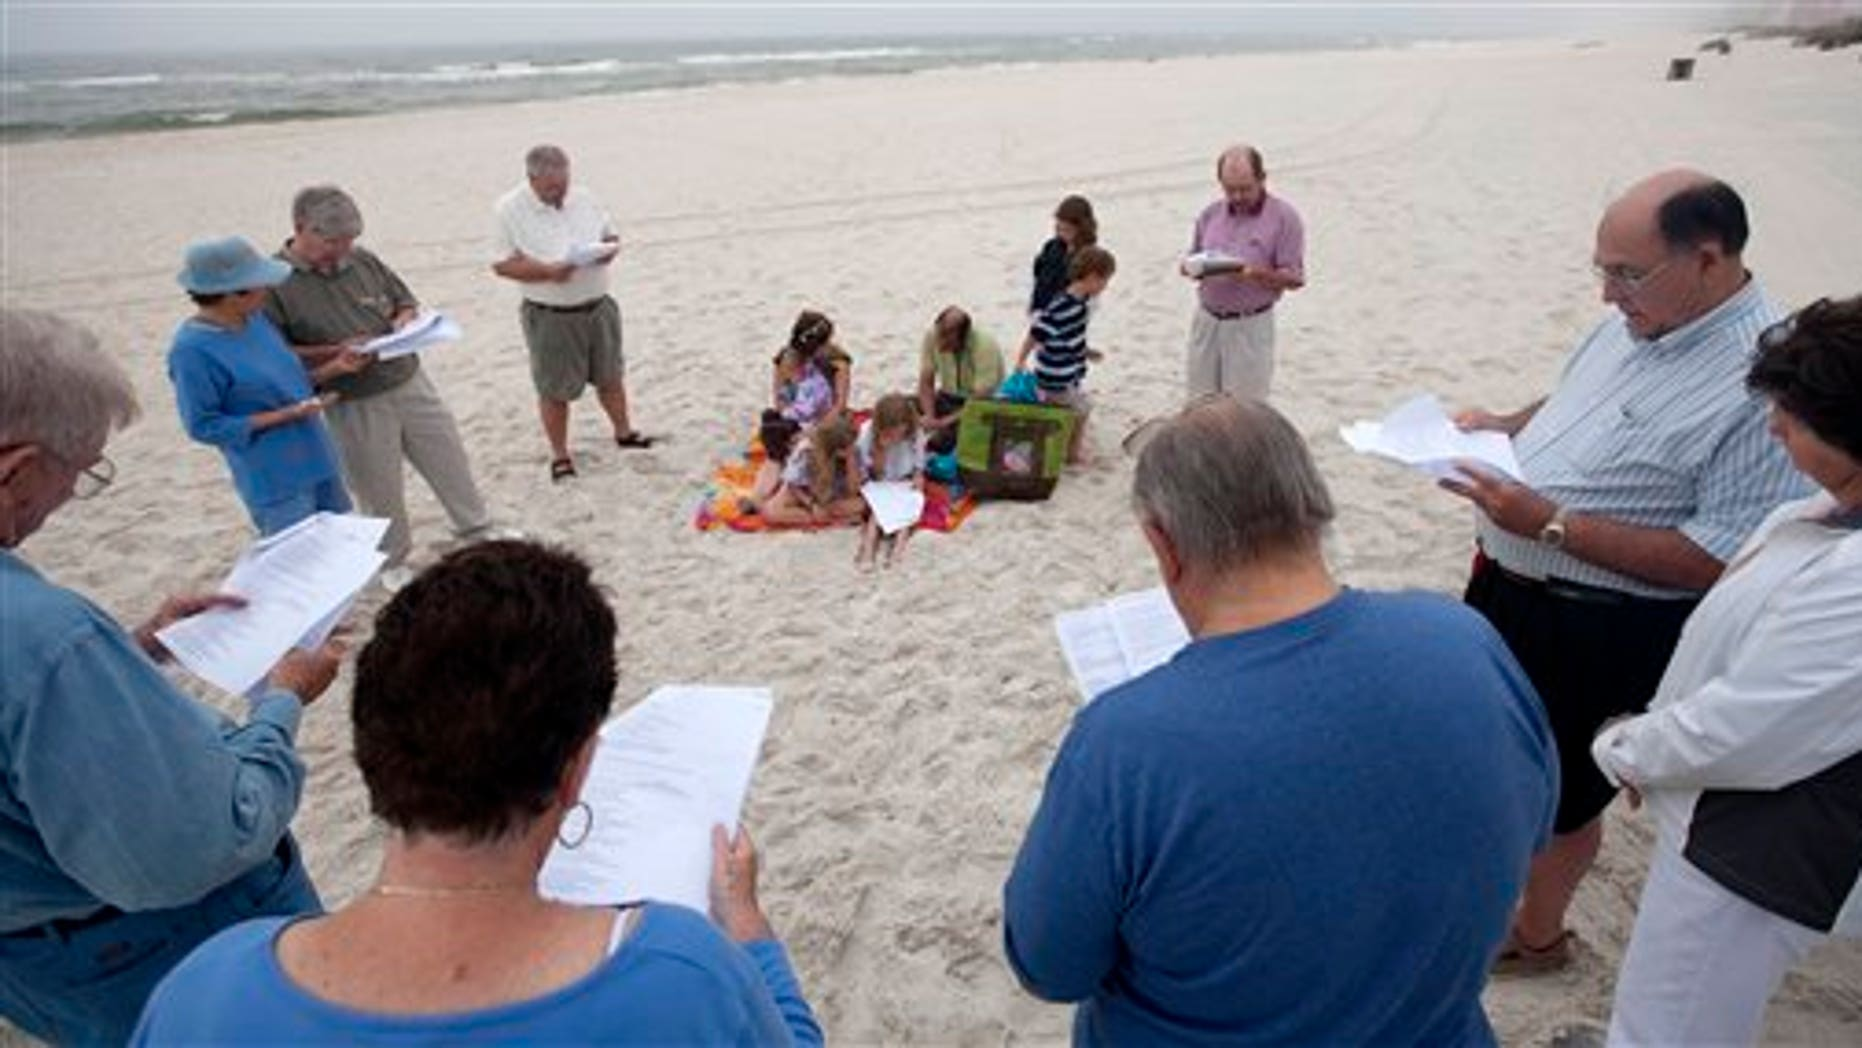 April 20: People gather in prayer at dawn during a prayer vigil for those who suffered following the Deepwater Horizon incident in Orange Beach, Ala.